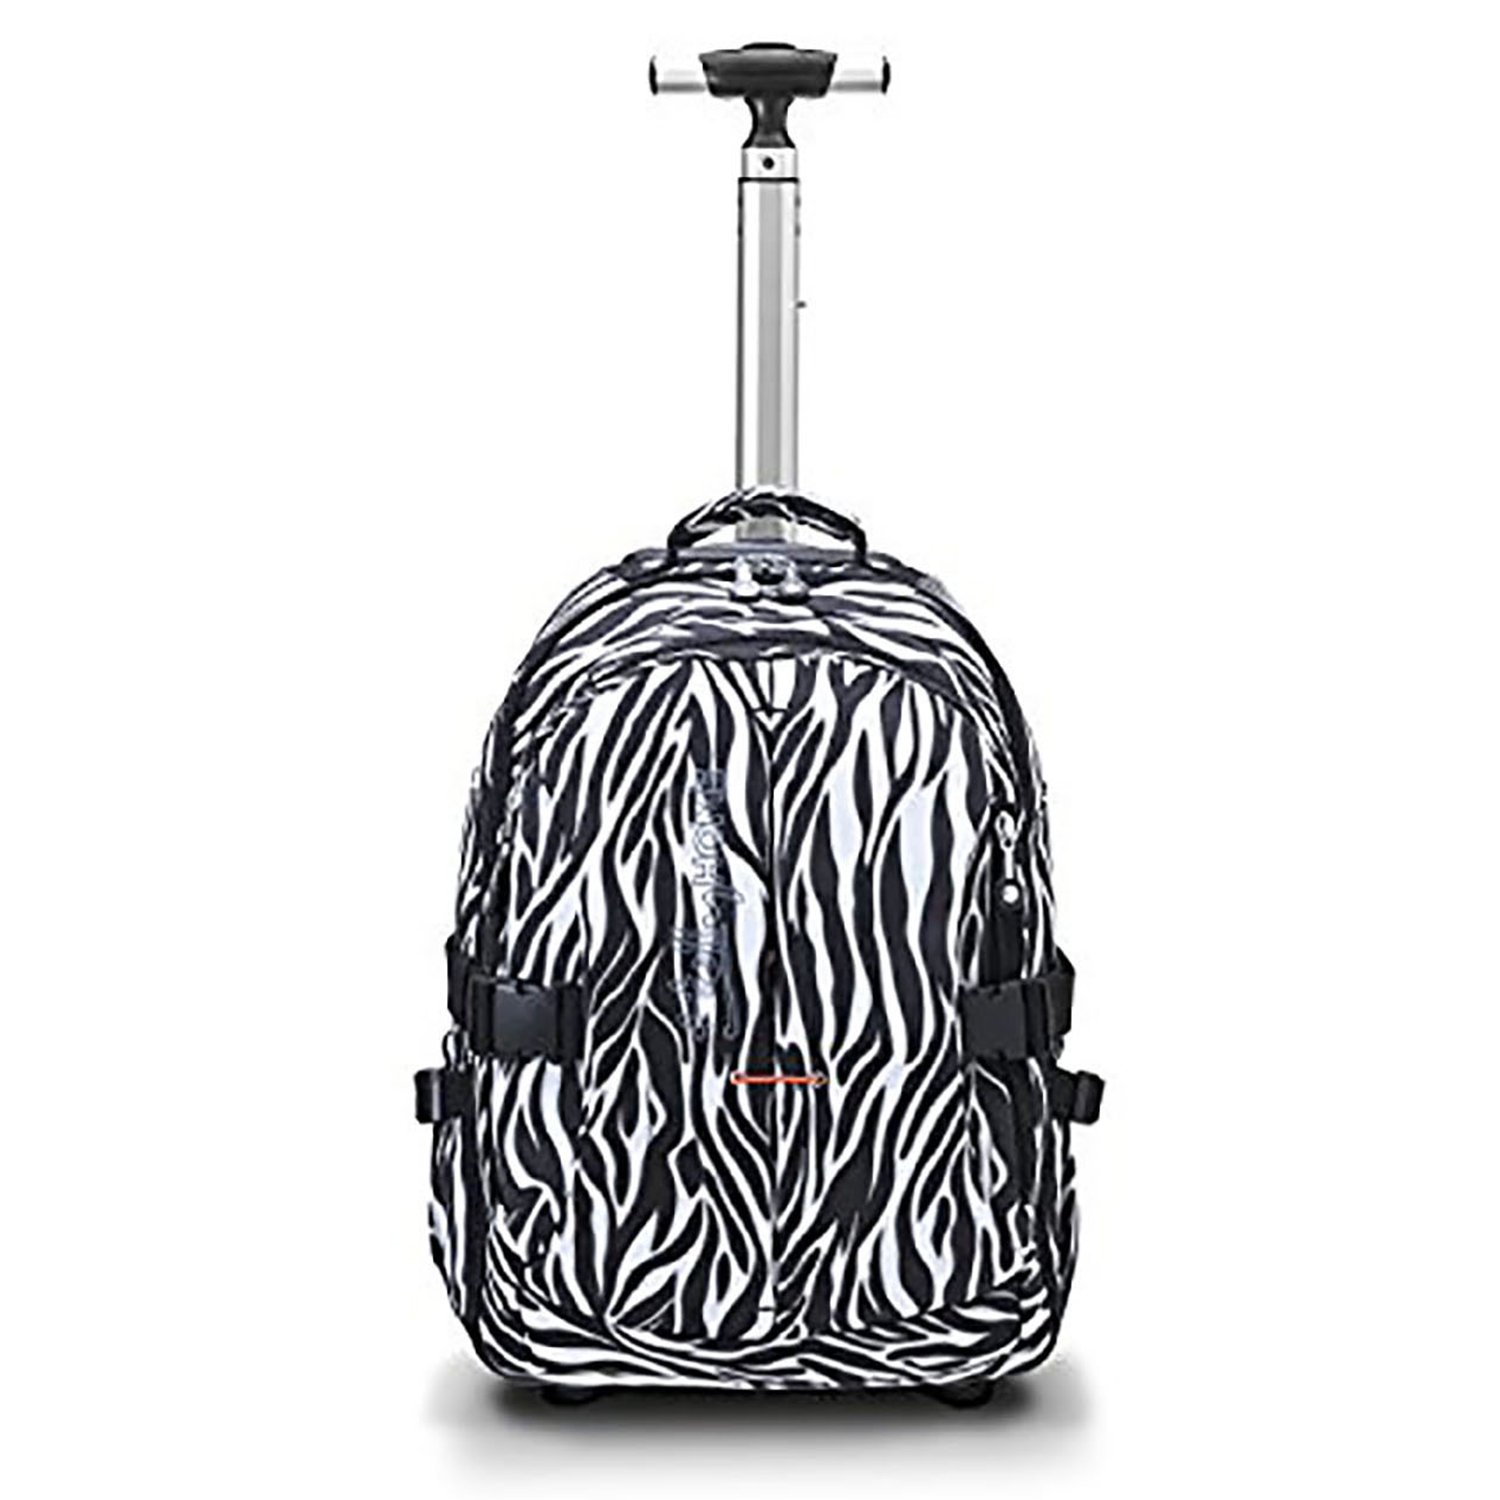 19 inches Multifunction Waterproof Wheeled Rolling Laptop Backpack for Girls and Boys School Books Bag by HollyHOME, Zebra Prints